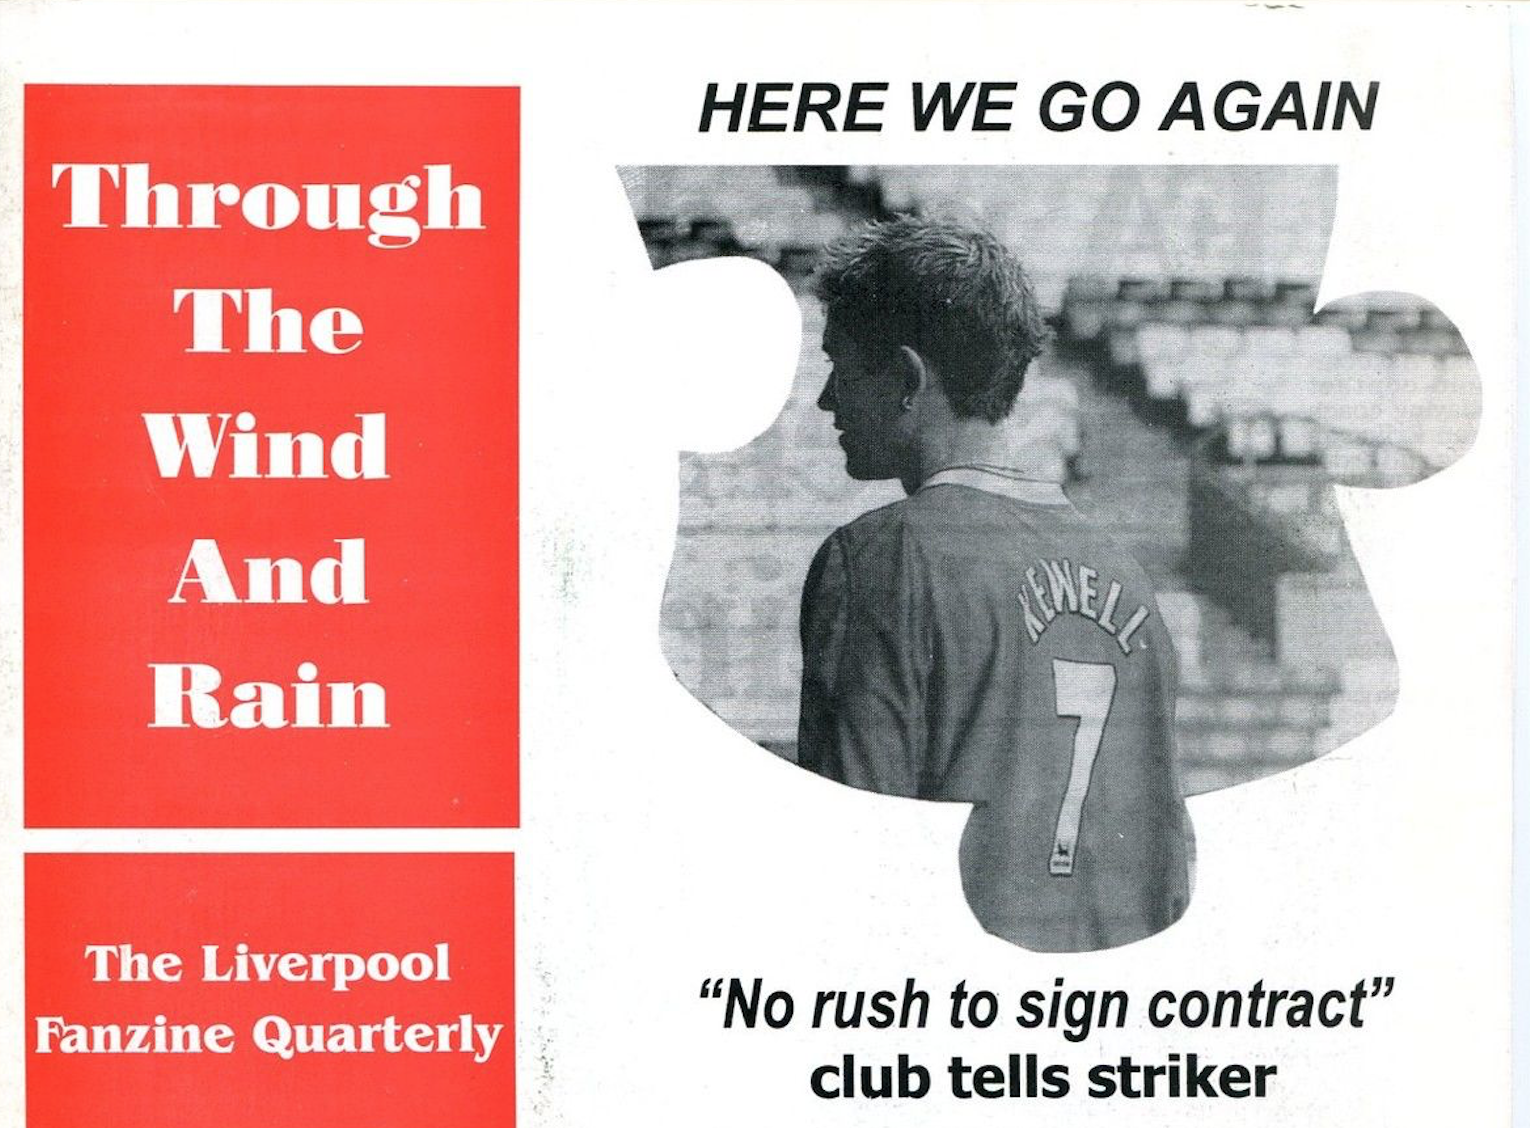 LIVERPOOL: THE SLOW DEATH OF THE FANZINE